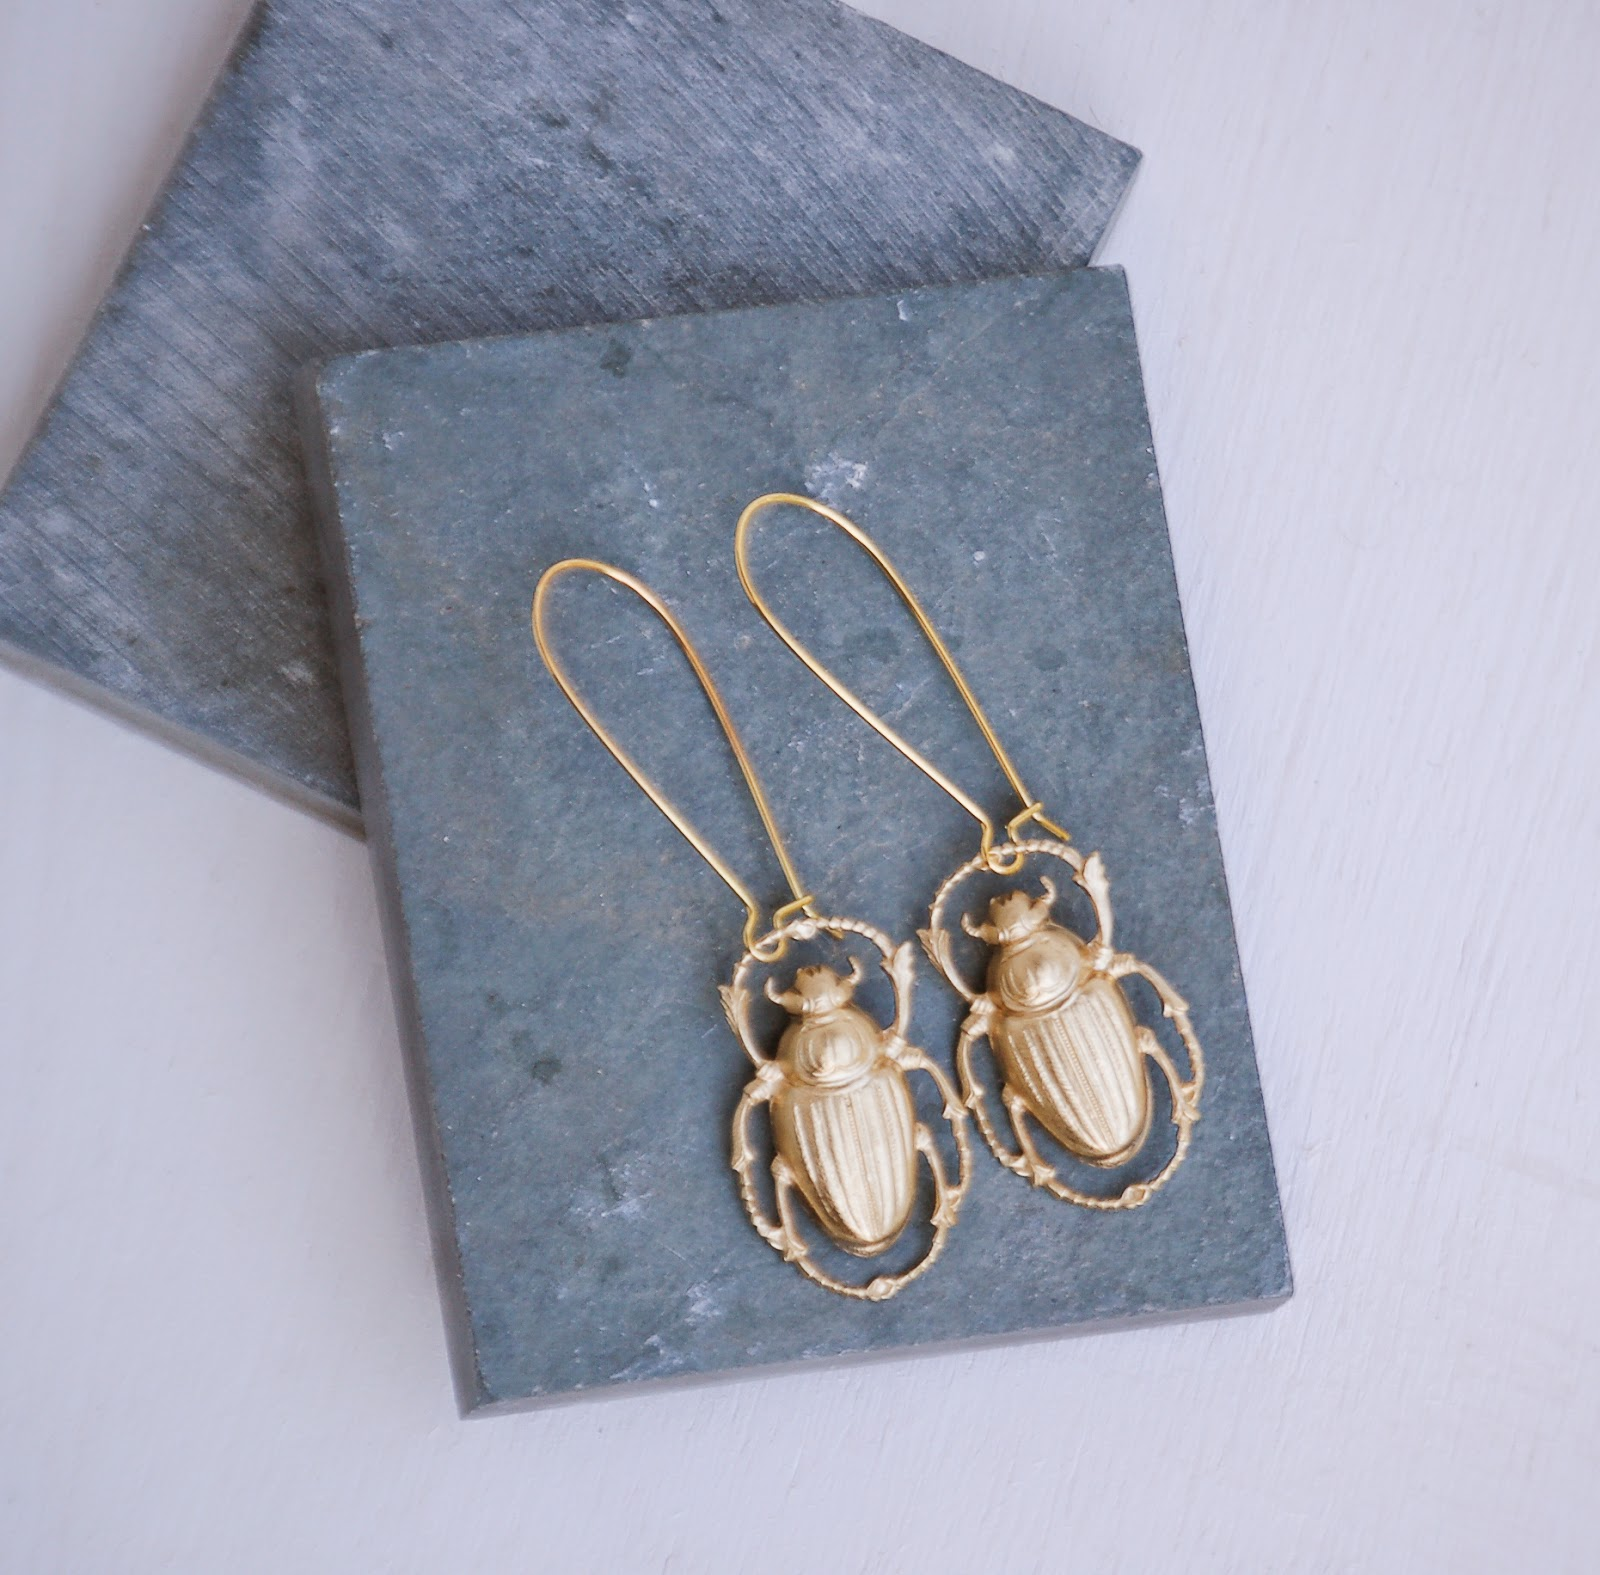 https://www.etsy.com/listing/226803713/gold-beetle-earrings-nature-study?ref=shop_home_active_2&ga_search_query=beetle